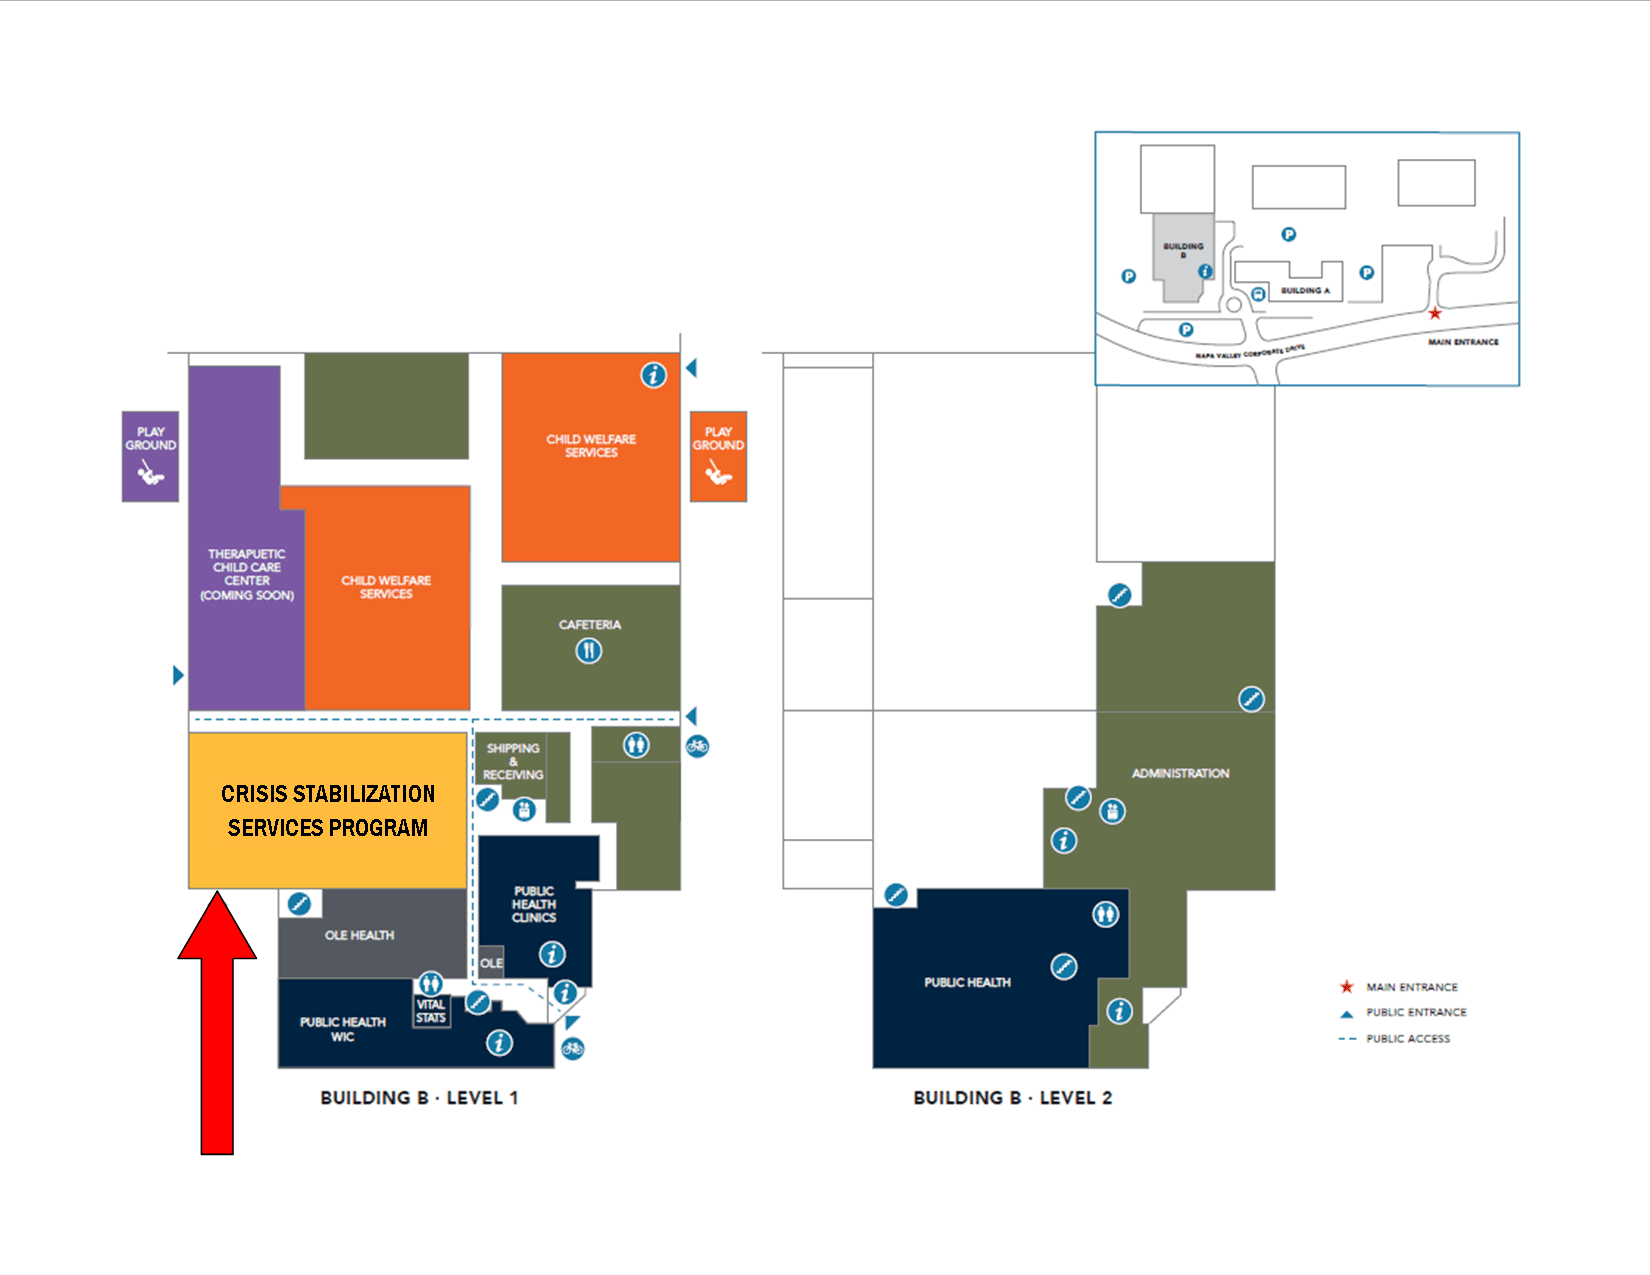 Crisis Stabilization Services Map of building and rooms